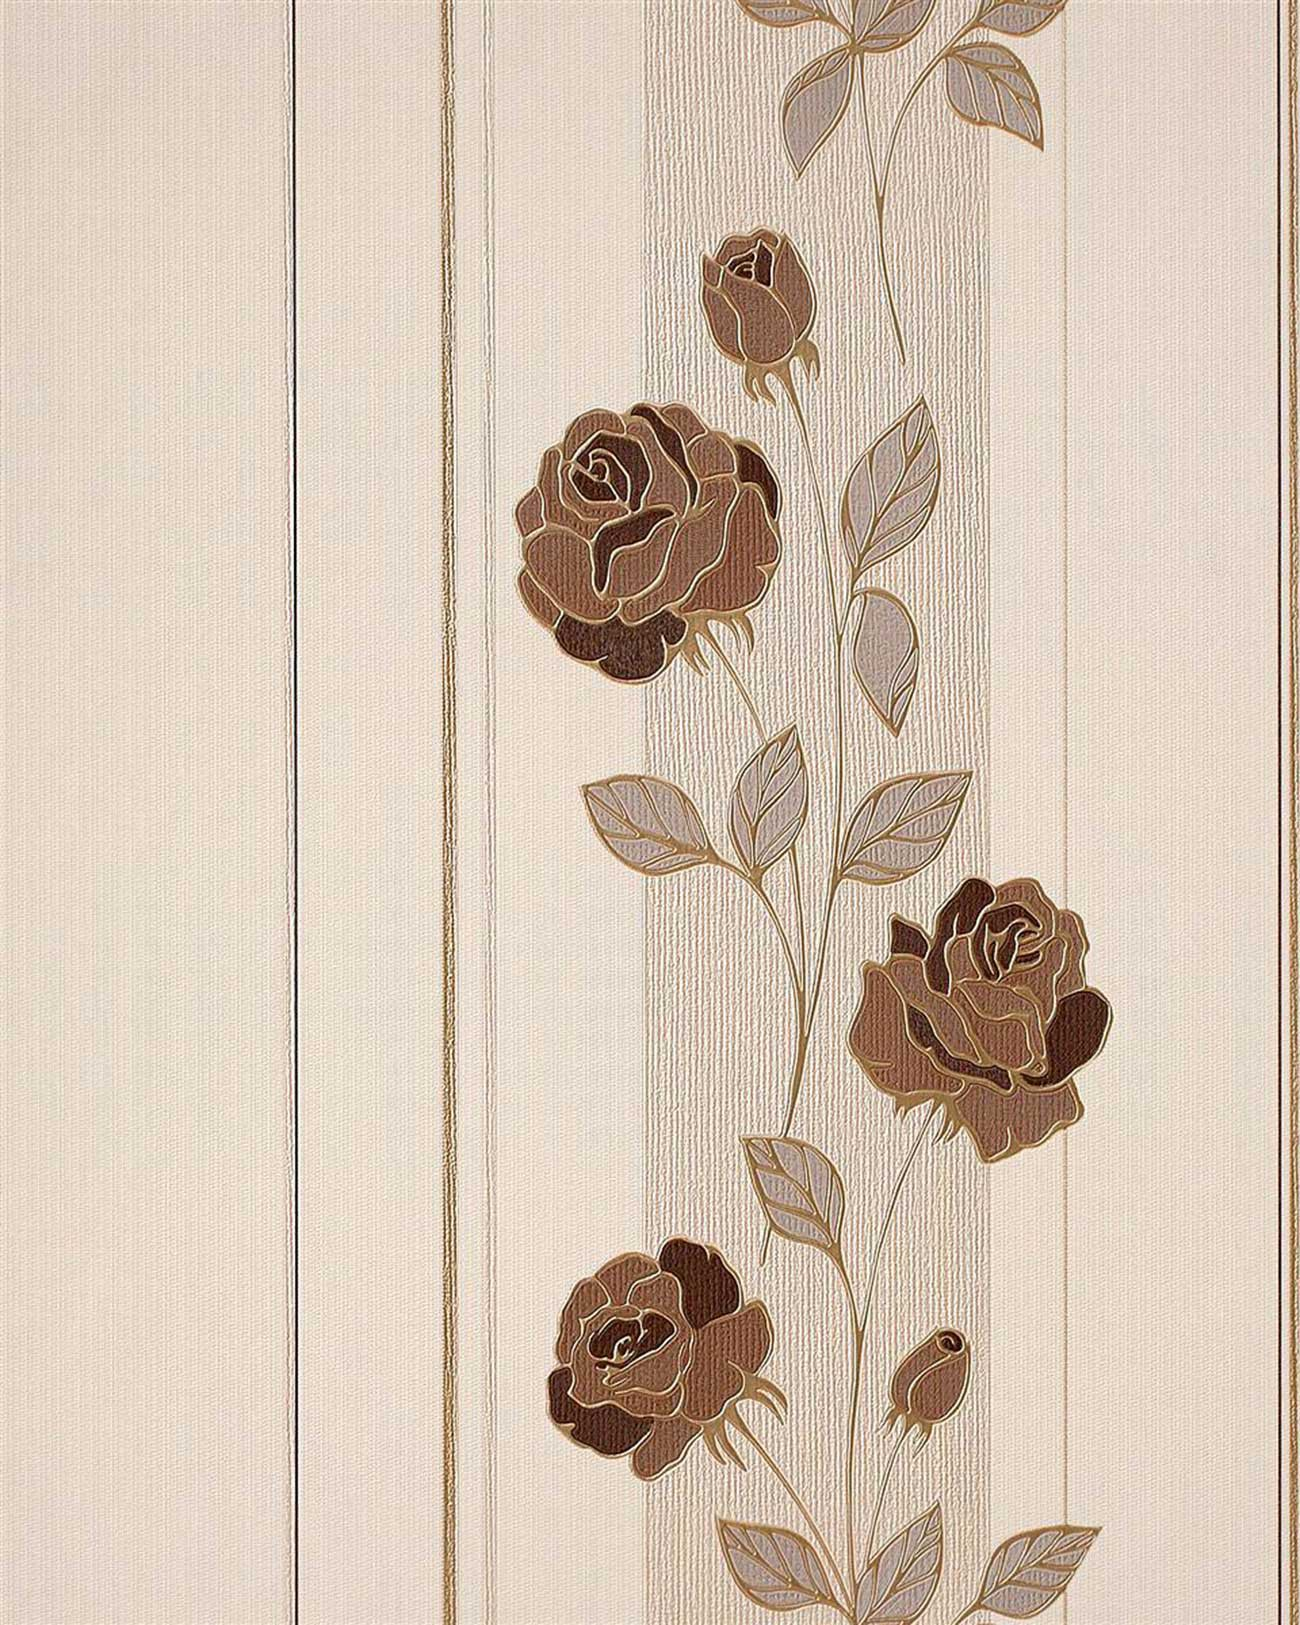 edem 766 36 deluxe floral blumen streifen tapete rosen beige silber braun gold ebay. Black Bedroom Furniture Sets. Home Design Ideas